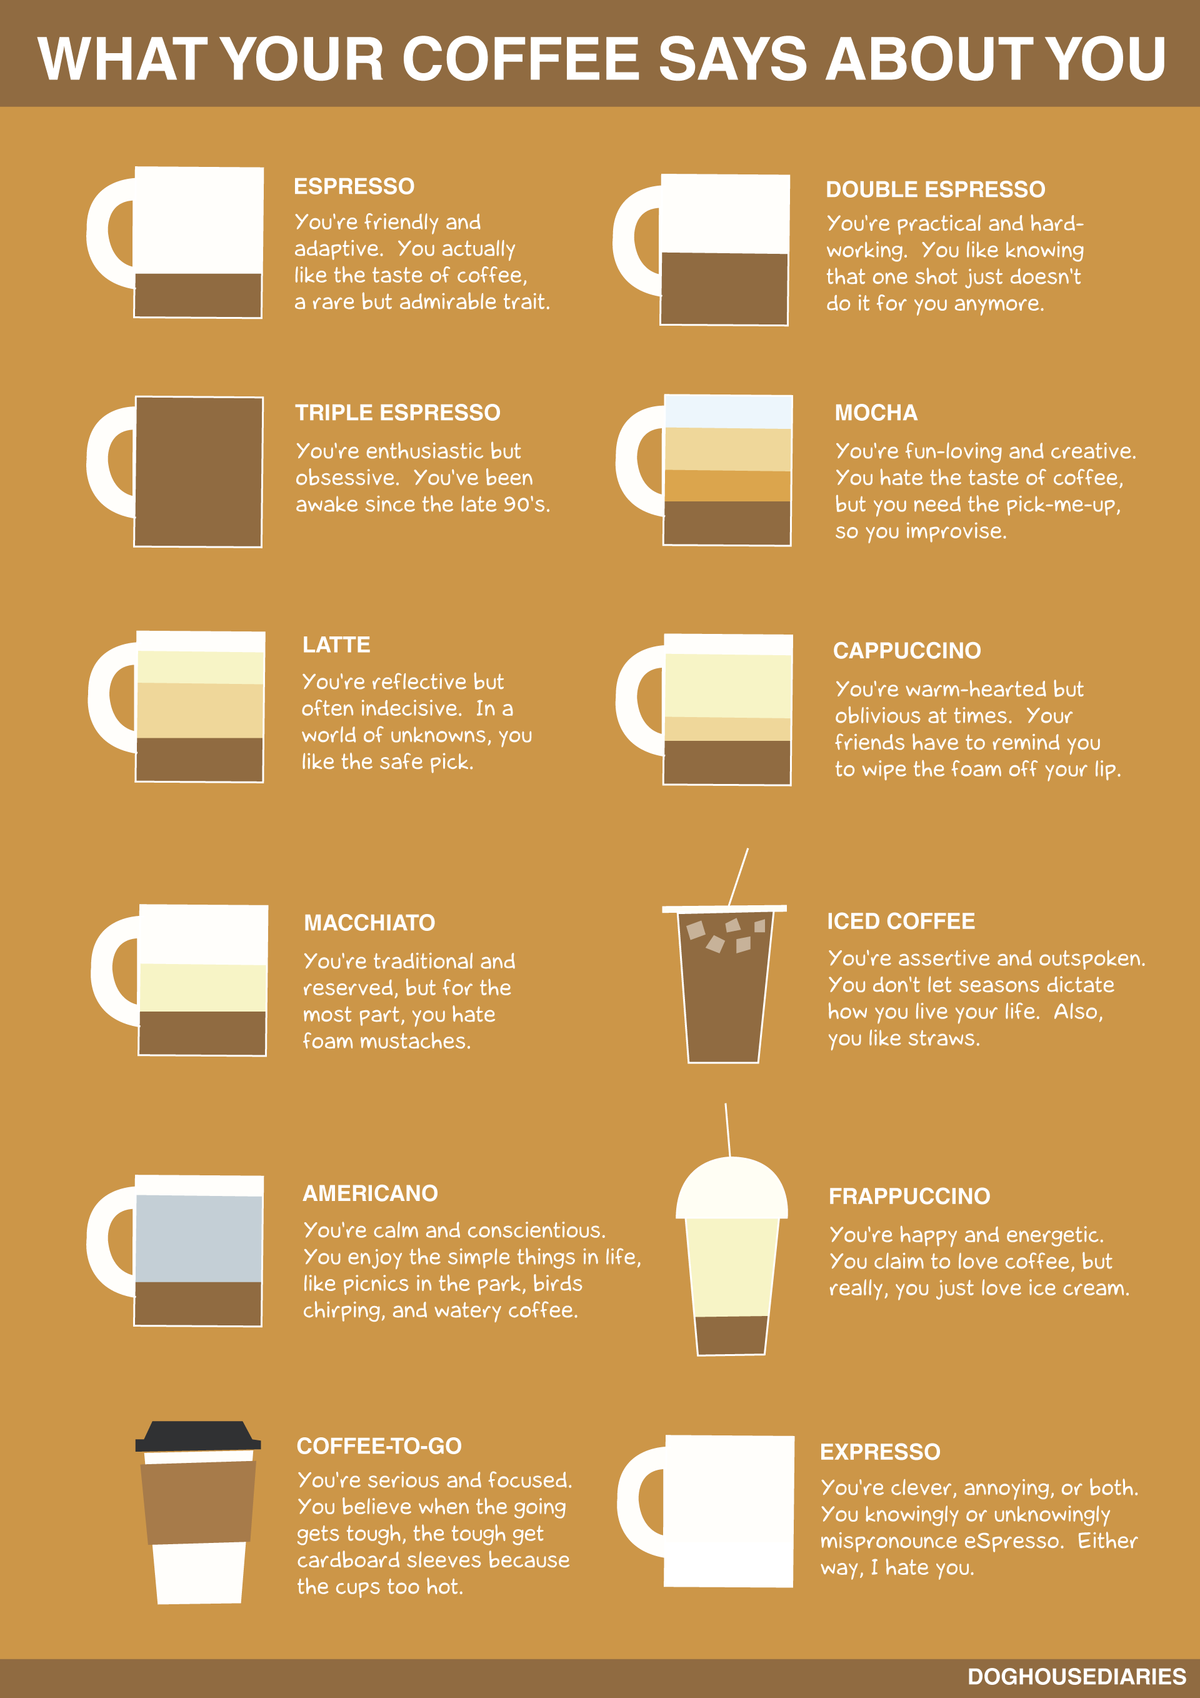 doghousediaries-coffee-says-about-you